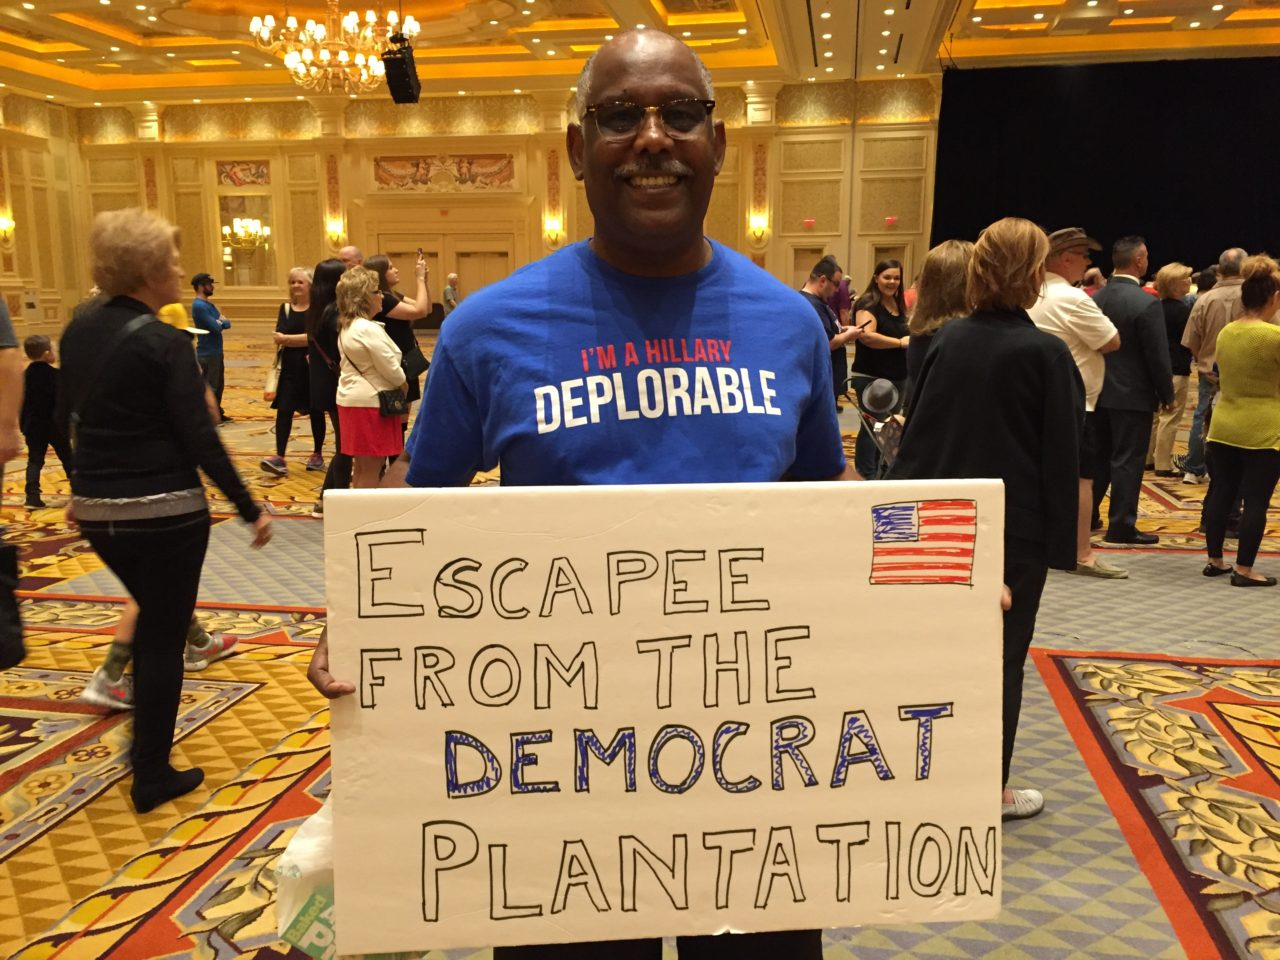 Escapee from the Democrat Plantation (Joel Pollak / Breitbart News)